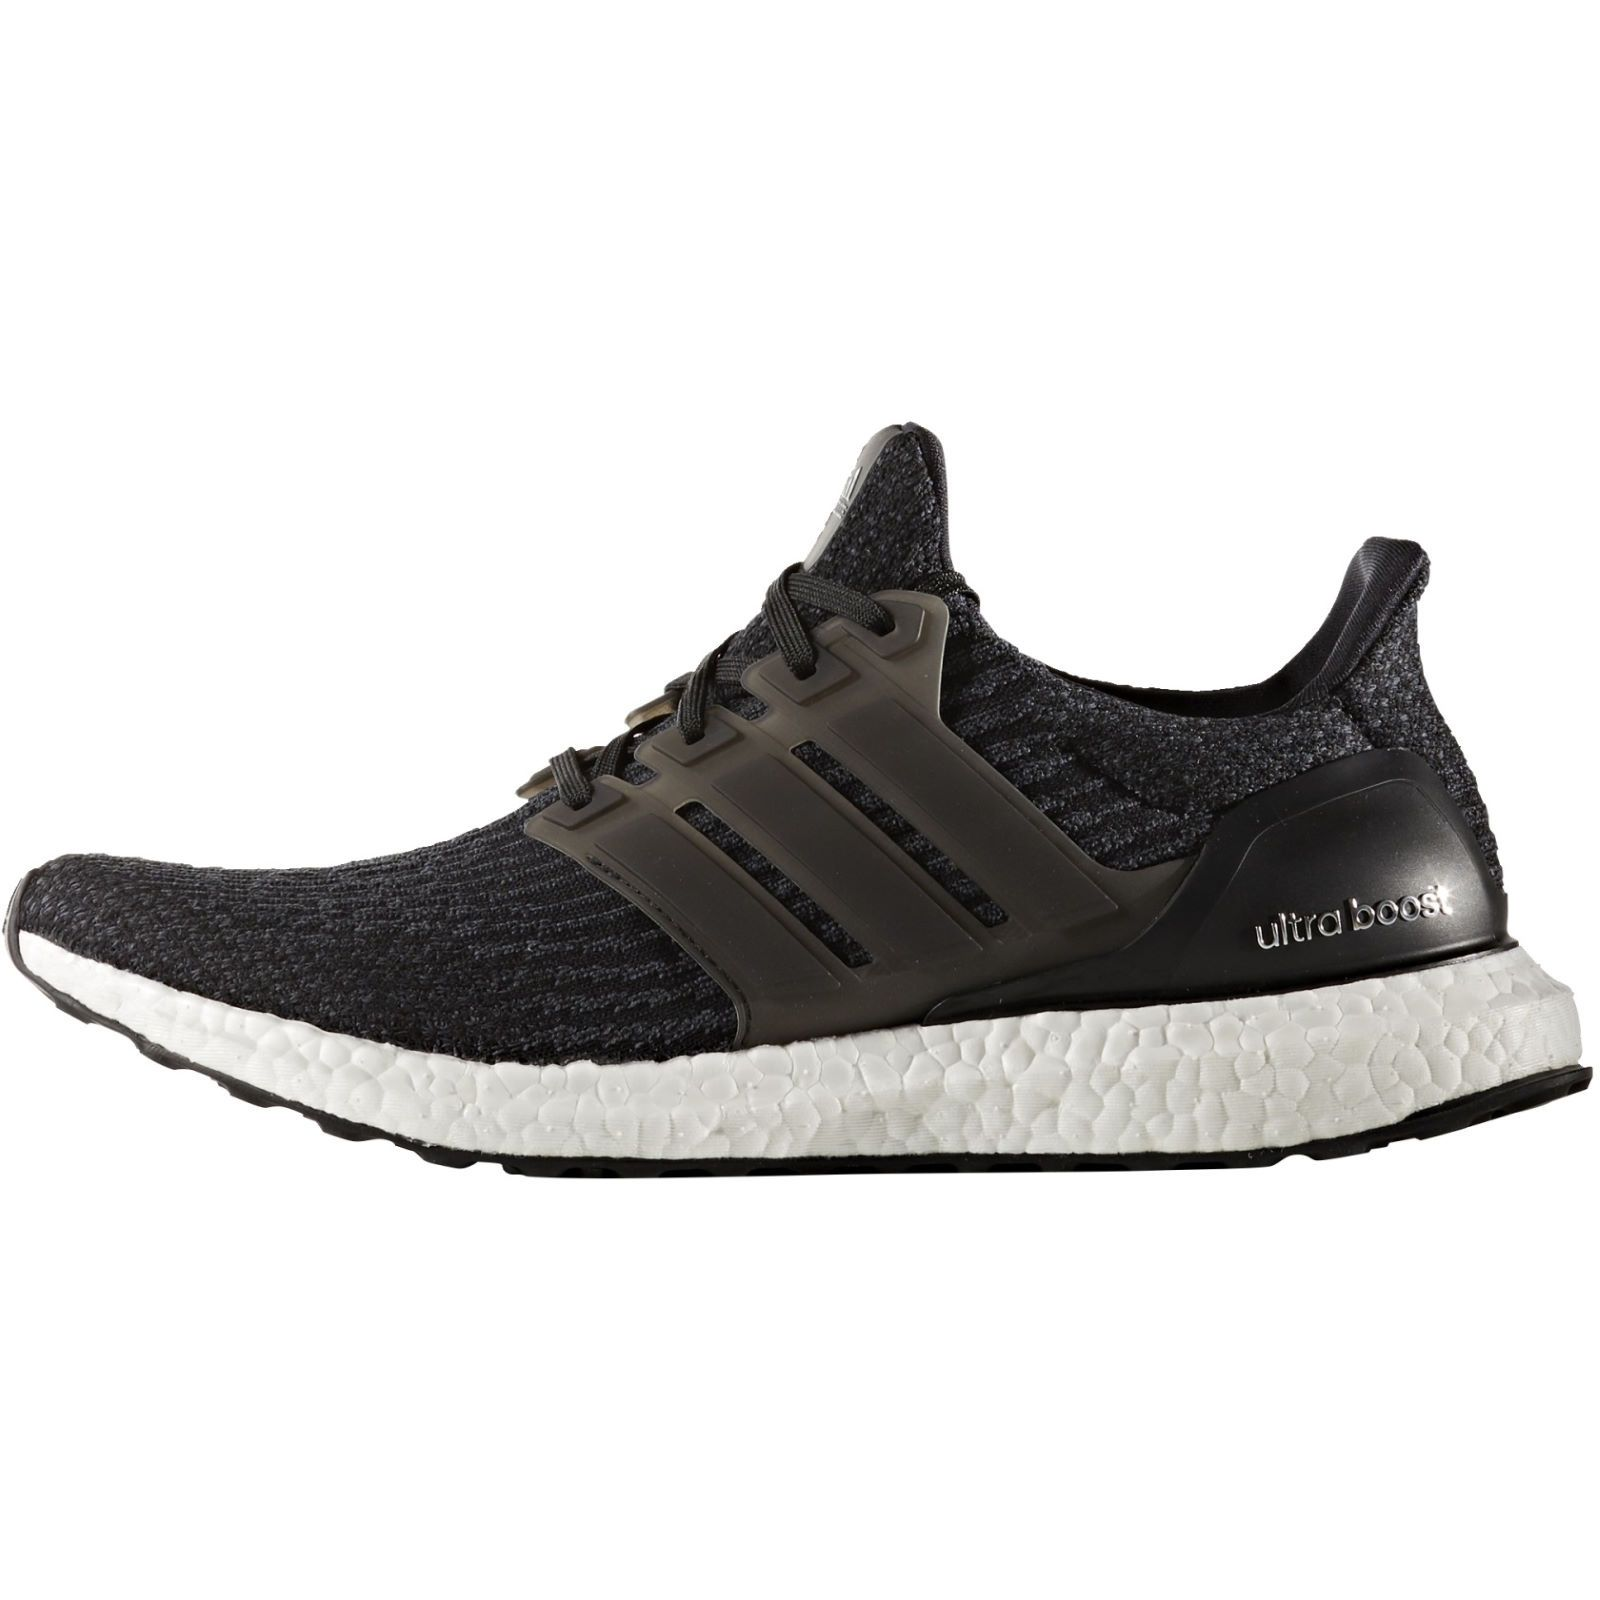 new arrivals 58339 7842a wiggle.com | Adidas Ultra Boost Shoes | Cushion Running ...